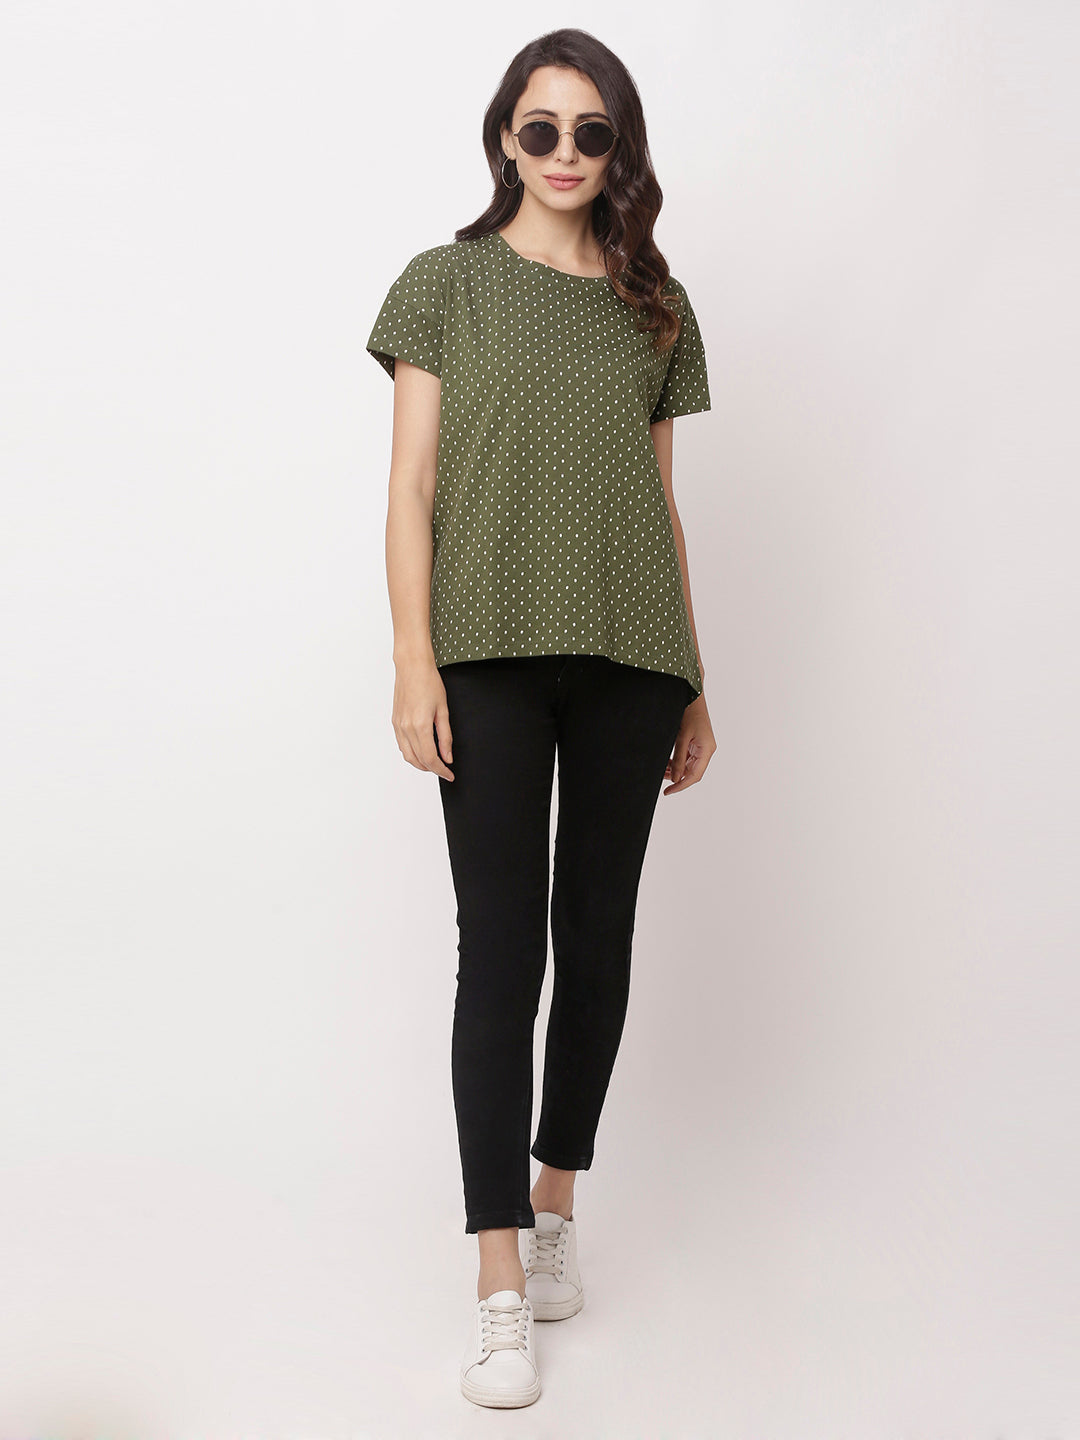 Globus Green Round Neck Printed Top-5